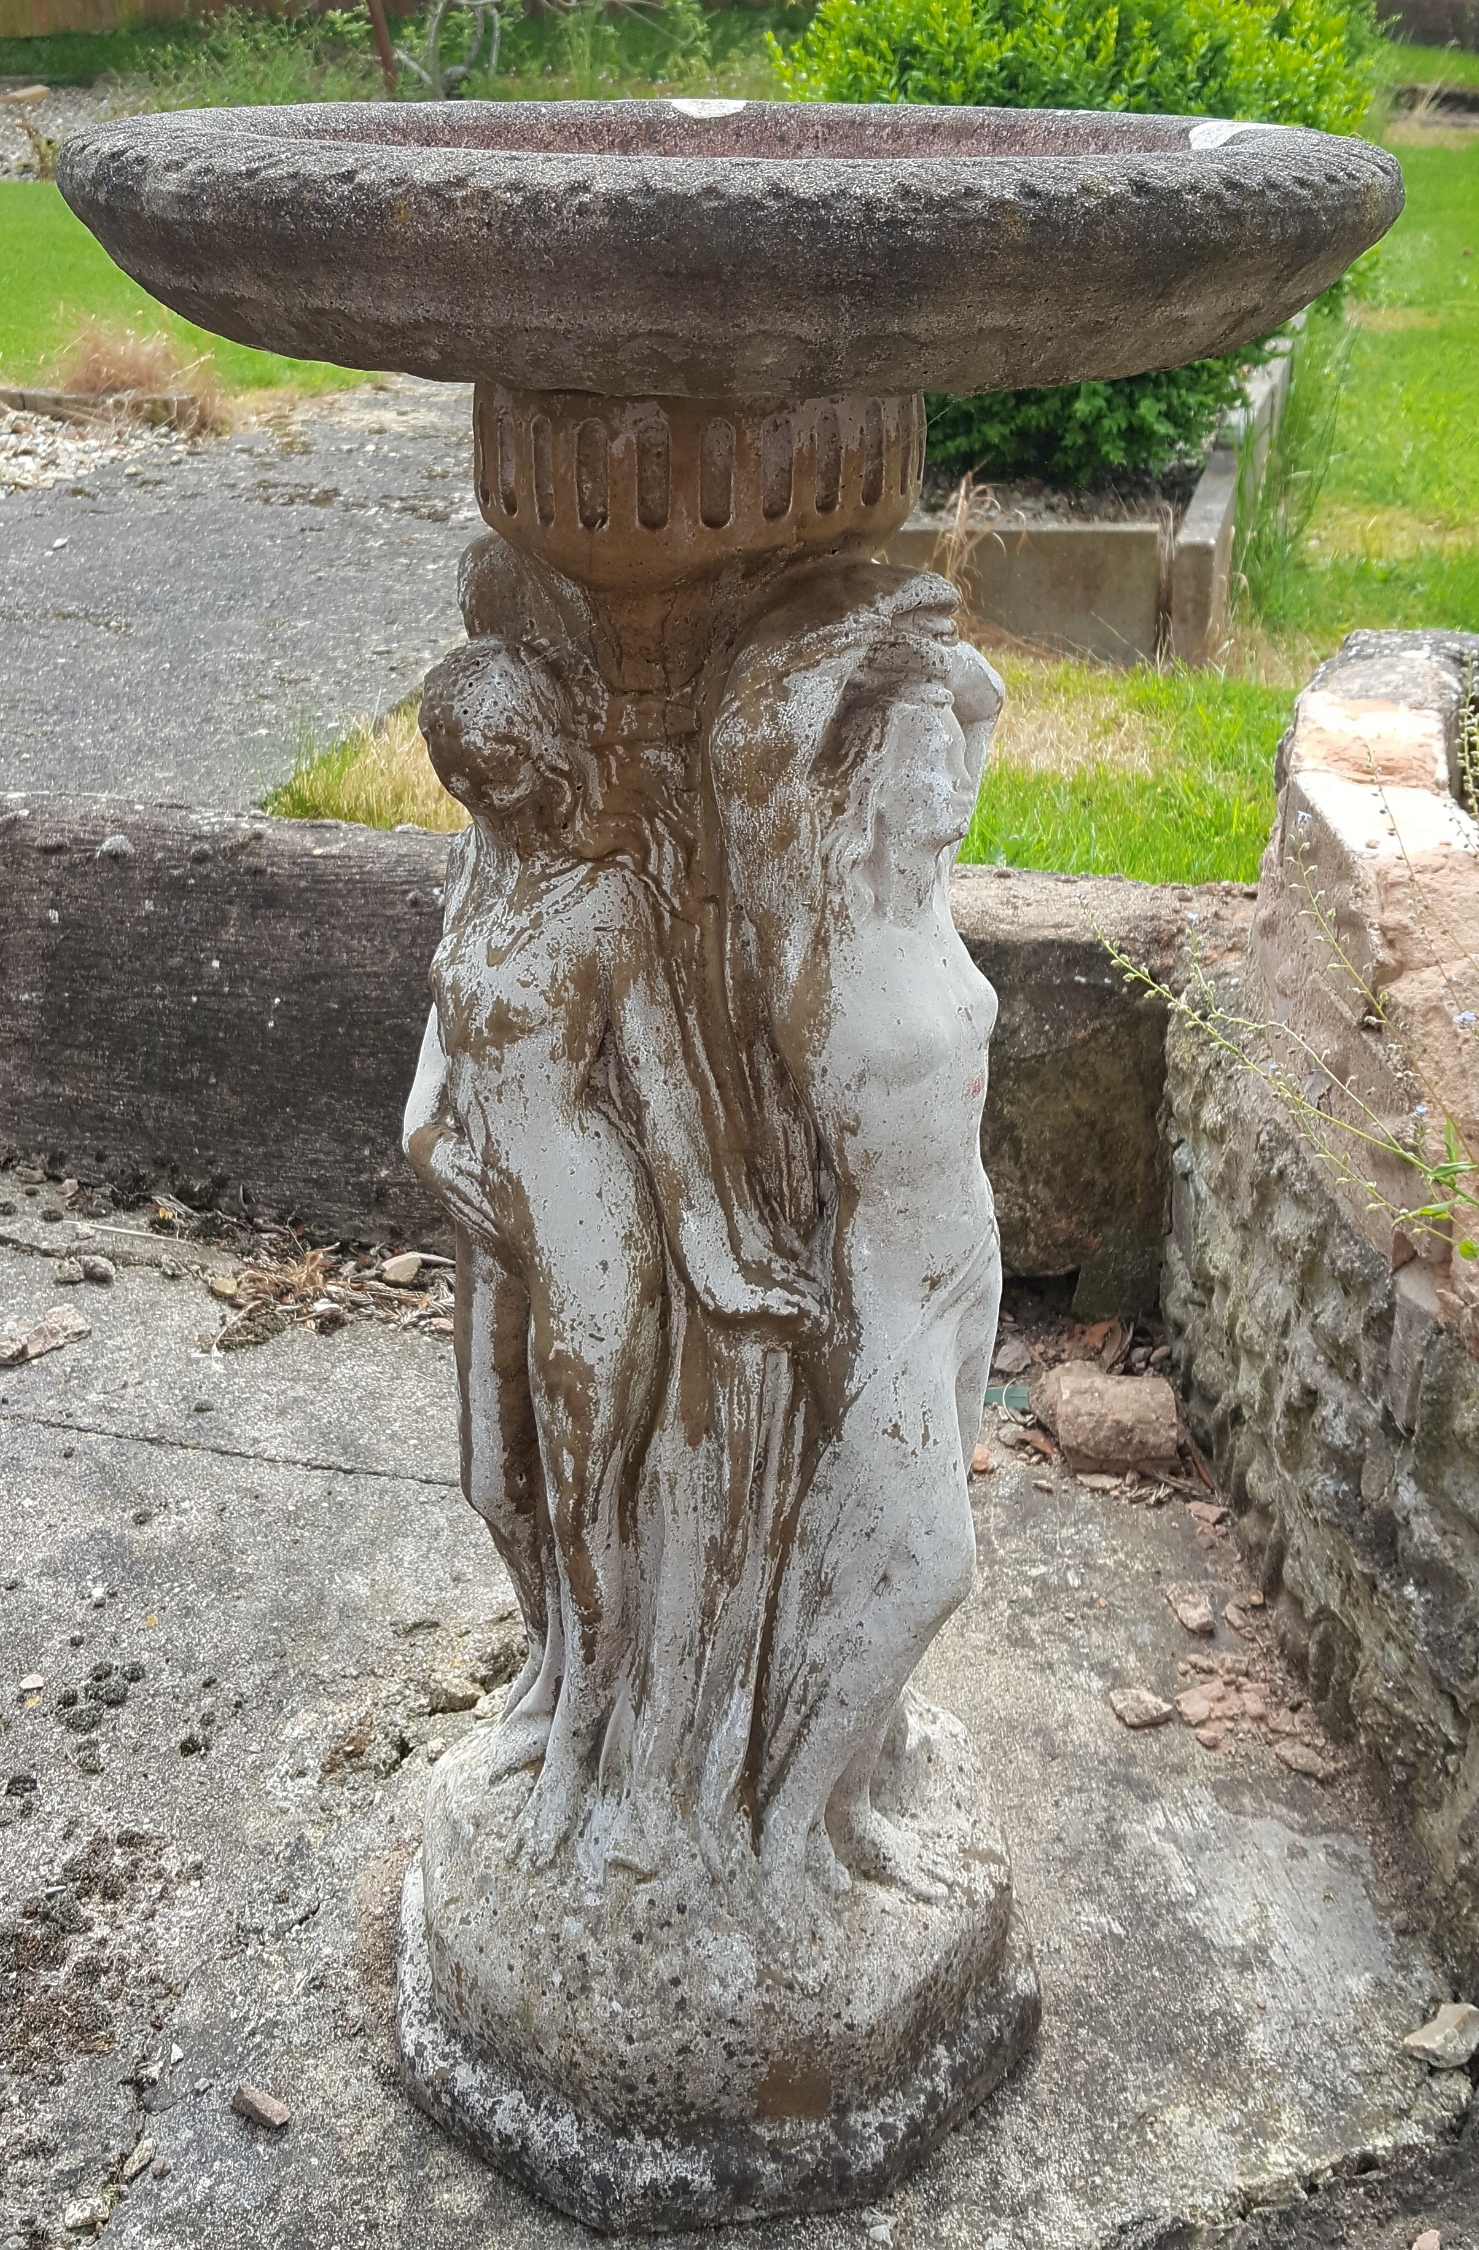 Lot 13 - Vintage Garden Bird Bath